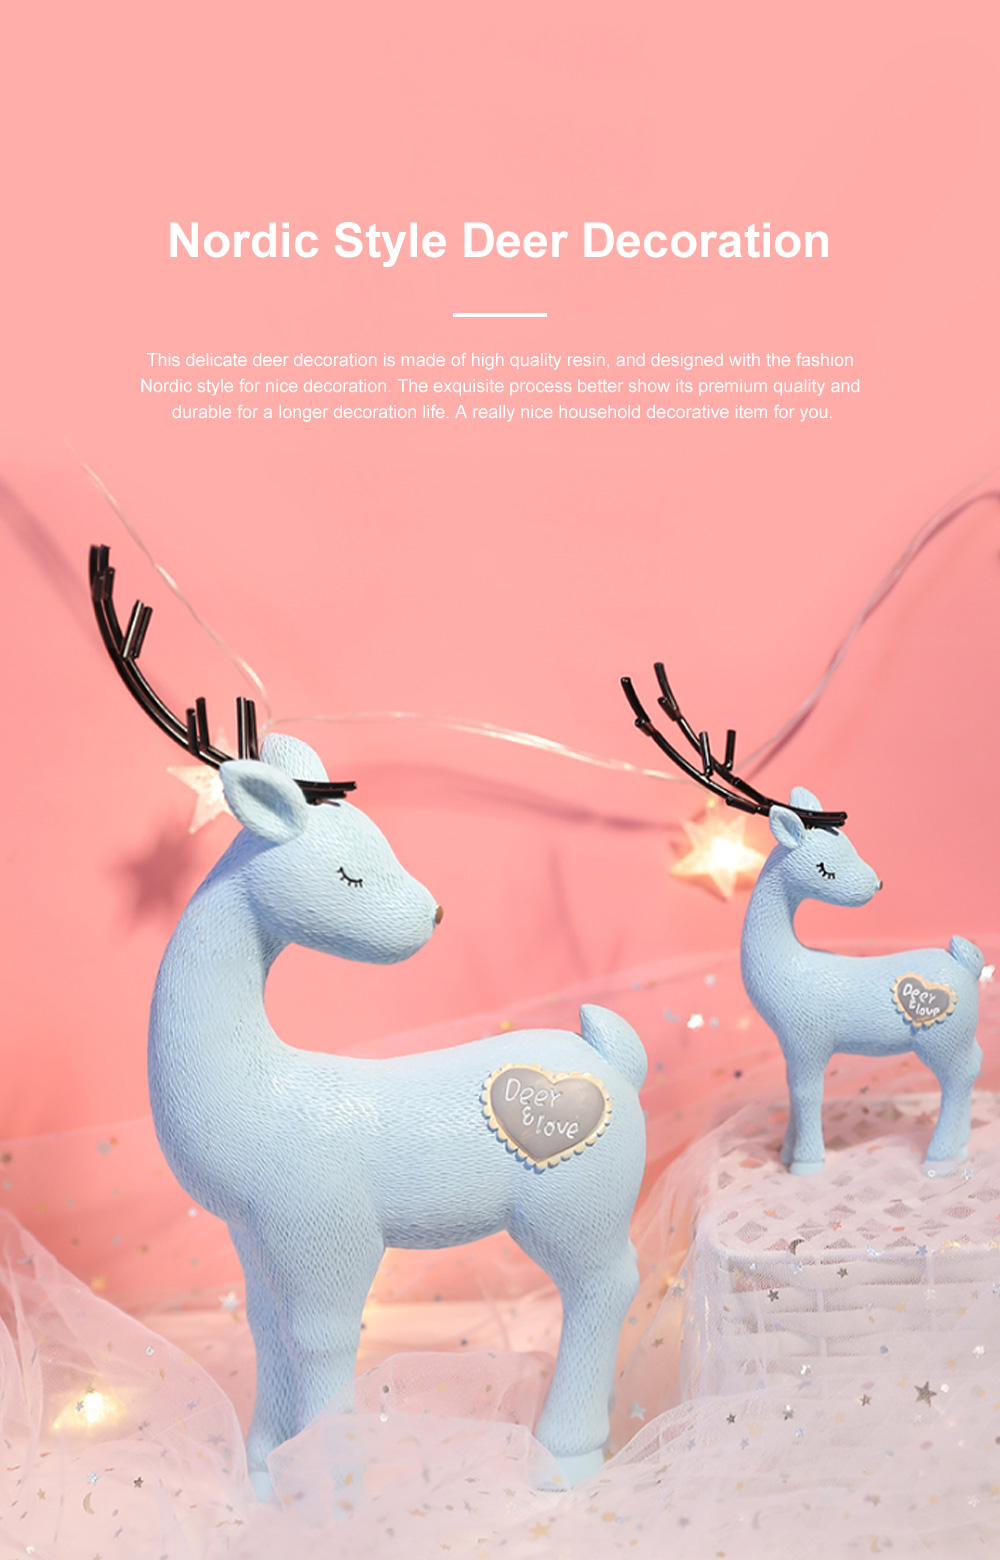 Crafts Decorative Deer Nordic Style Resin Deer Household Decoration for Living Room Bedroom and Office Decoration 0